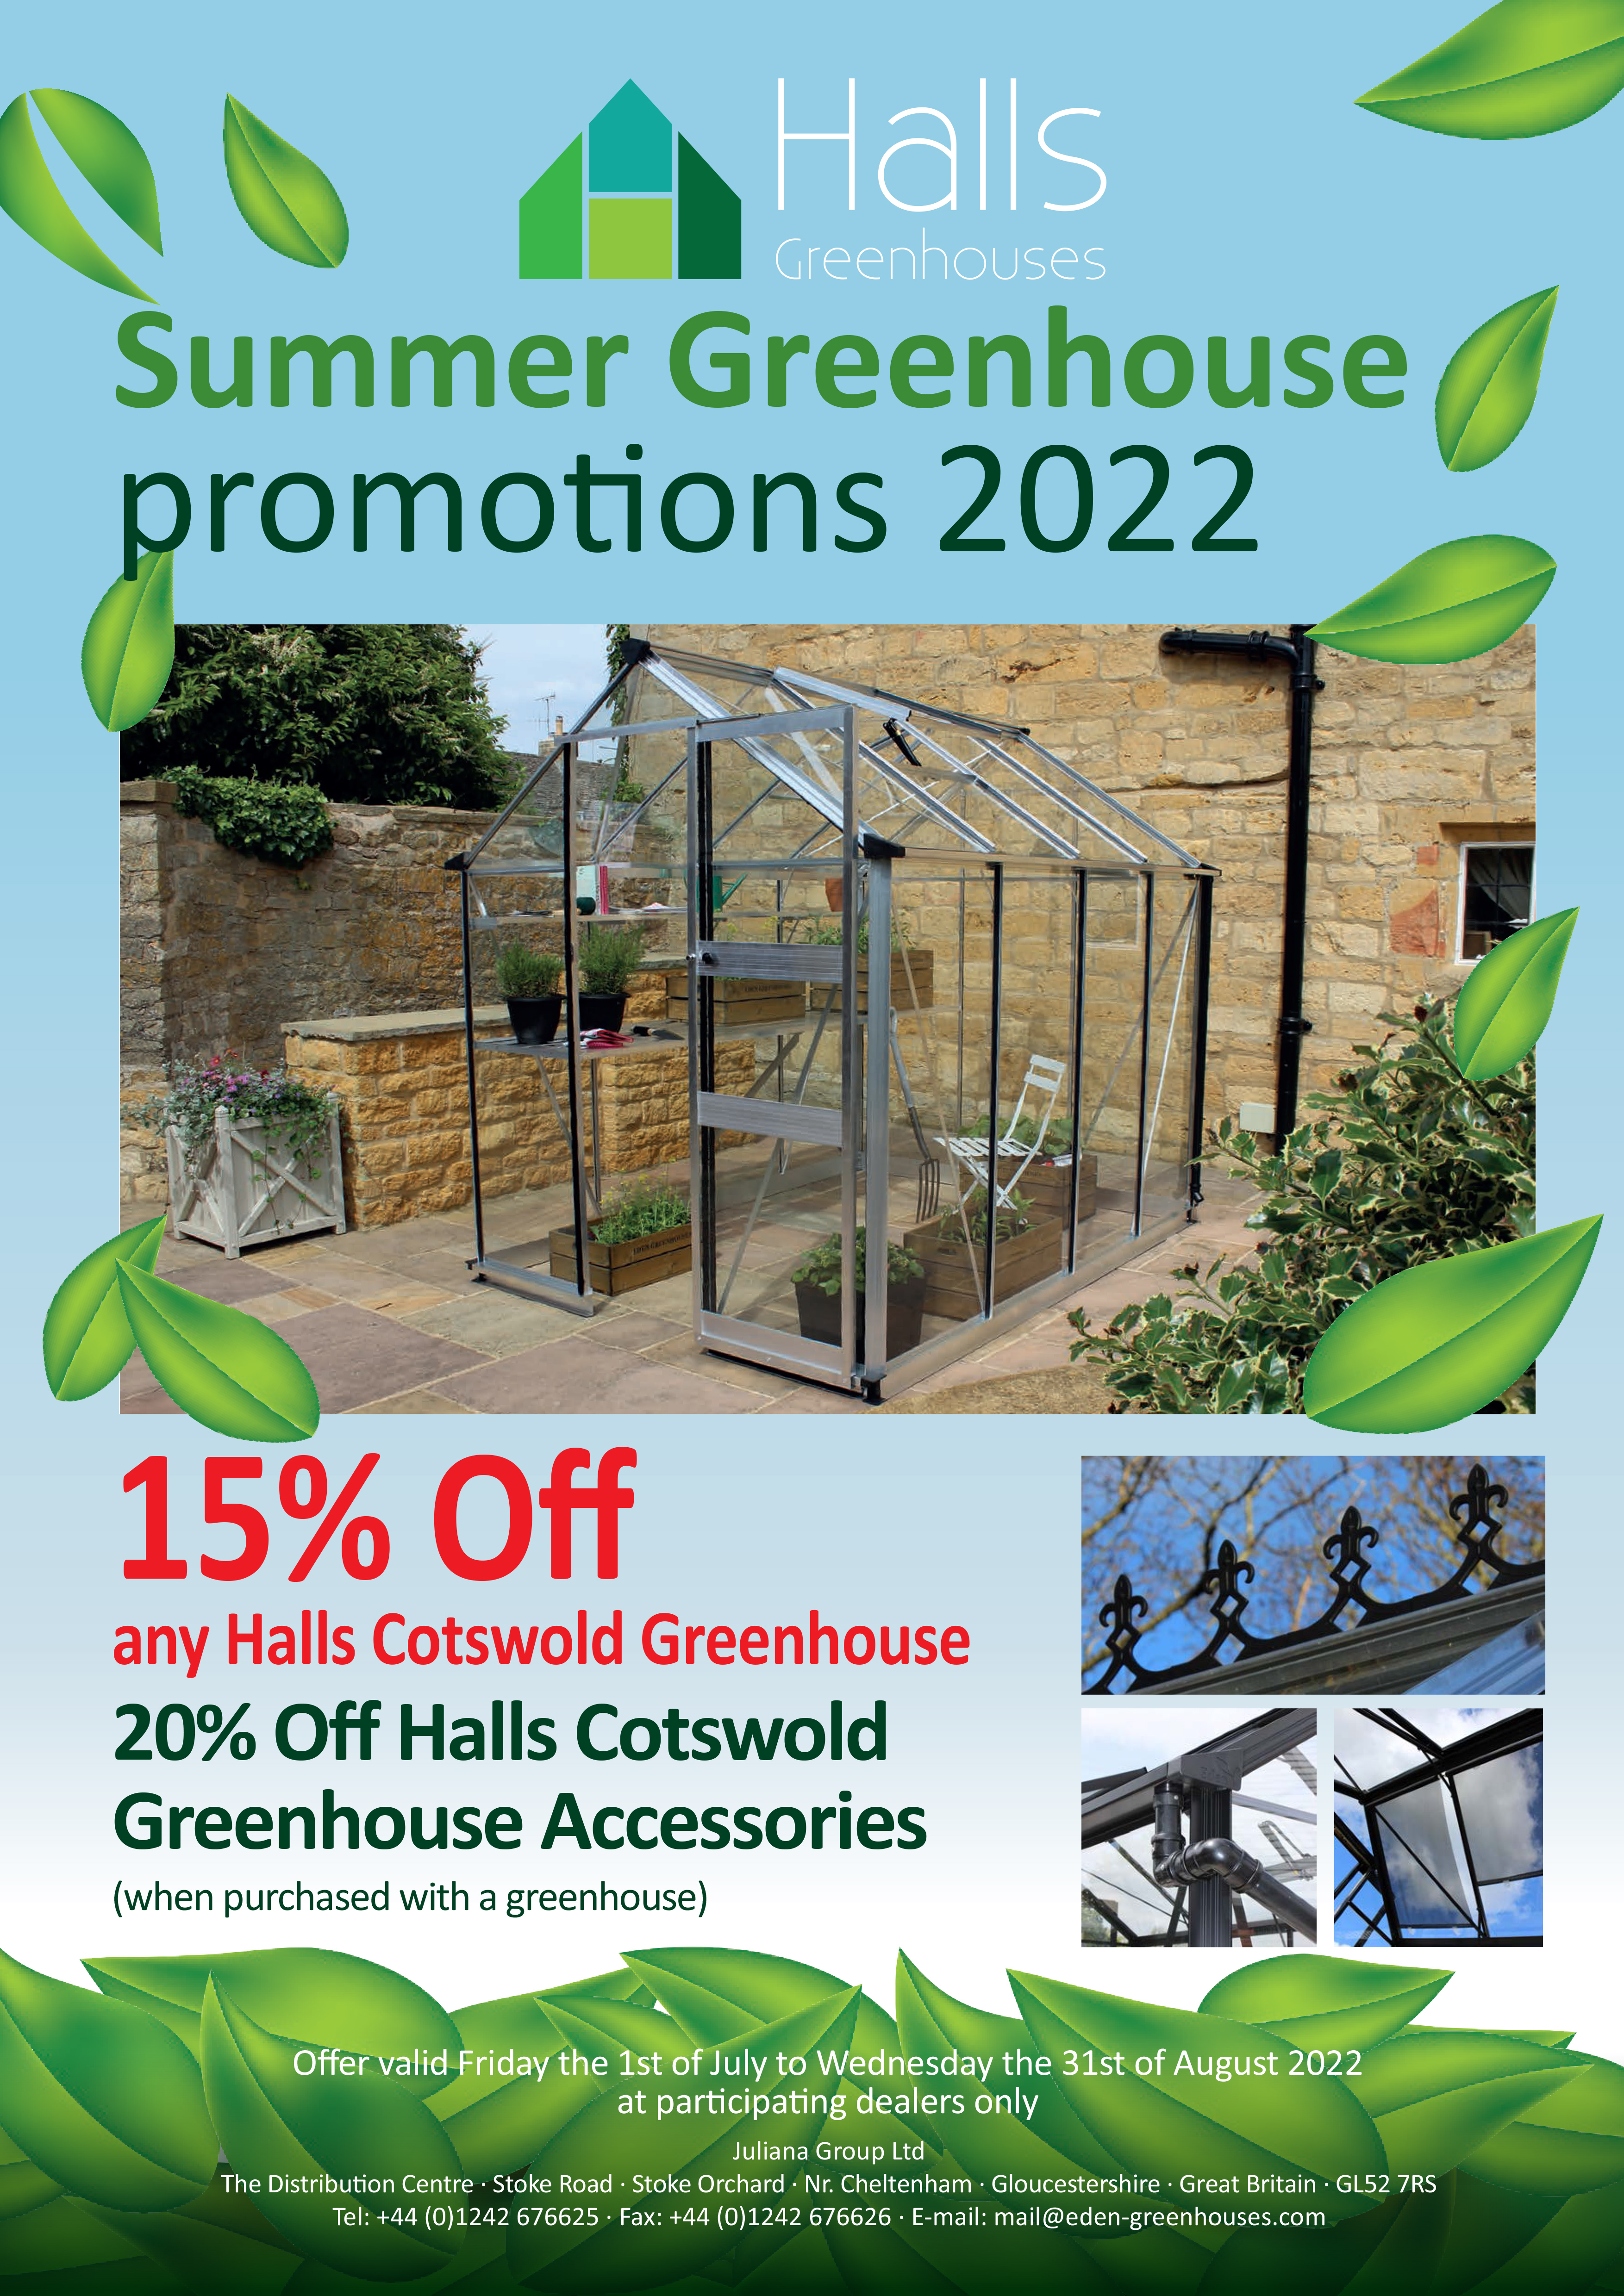 Eden and Halls Greenhouses - Current Offer